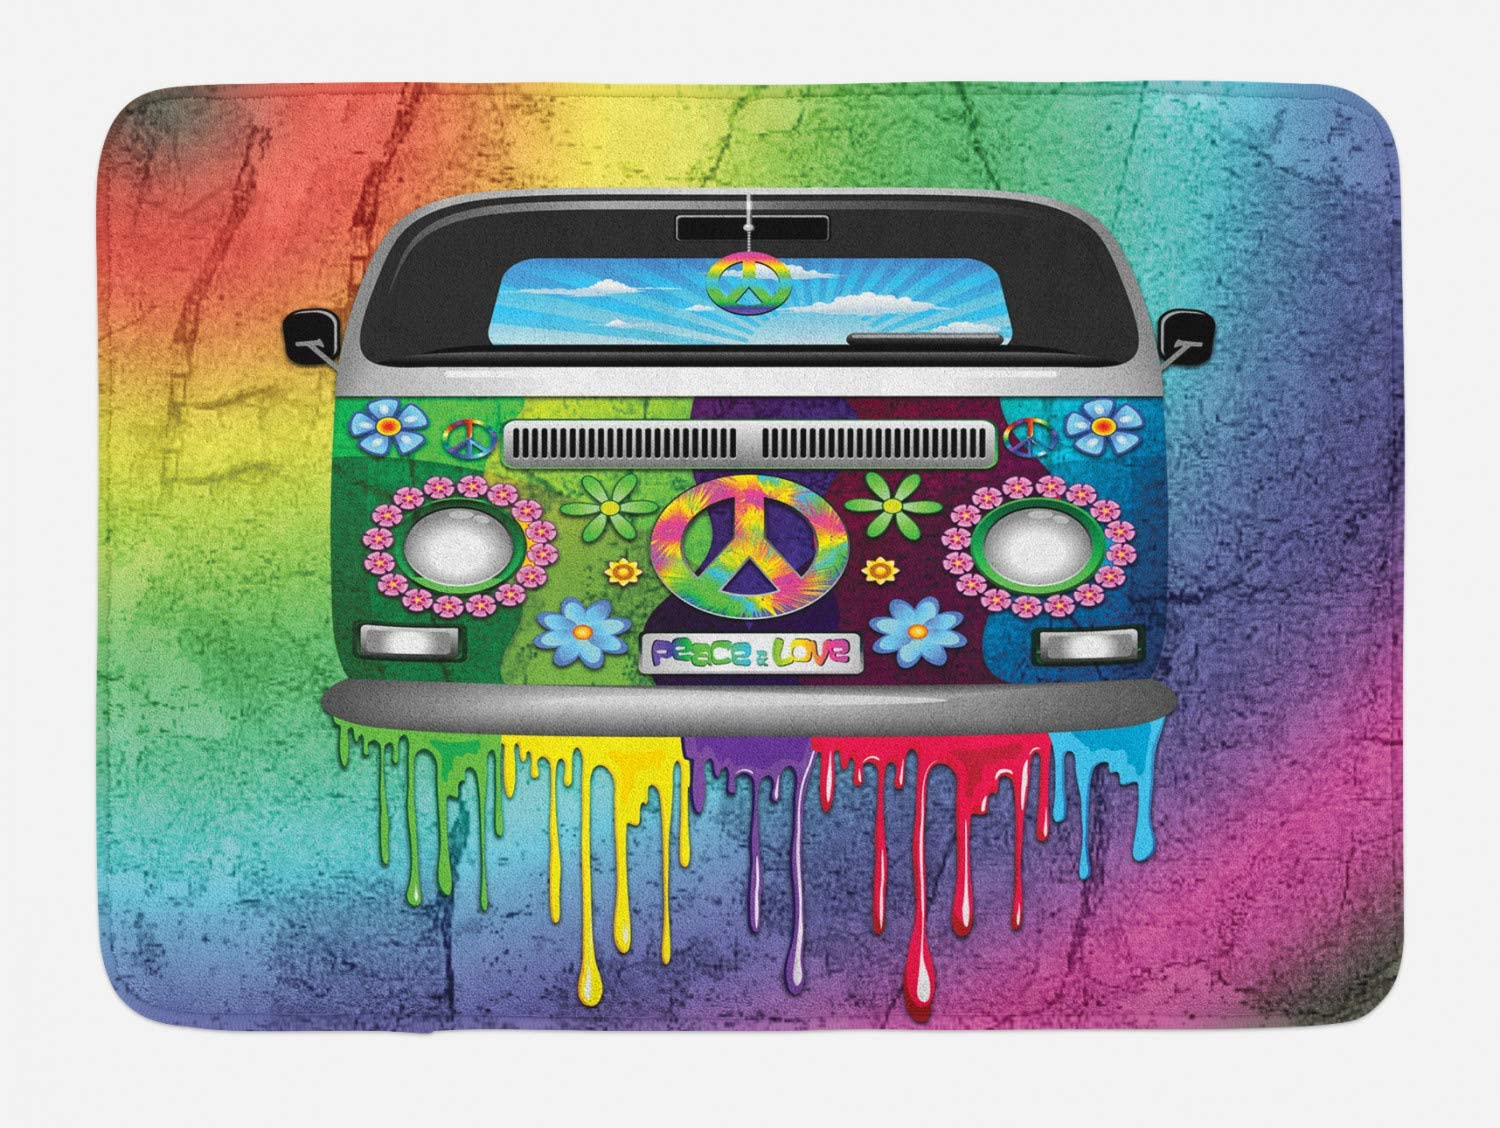 """Ambesonne Groovy Bath Mat, Old Style Hippie Van Dripping Rainbow Paint Mid 60s Youth Revolution Movement Theme, Plush Bathroom Decor Mat with Non Slip Backing, 29.5"""" X 17.5"""", Magenta"""